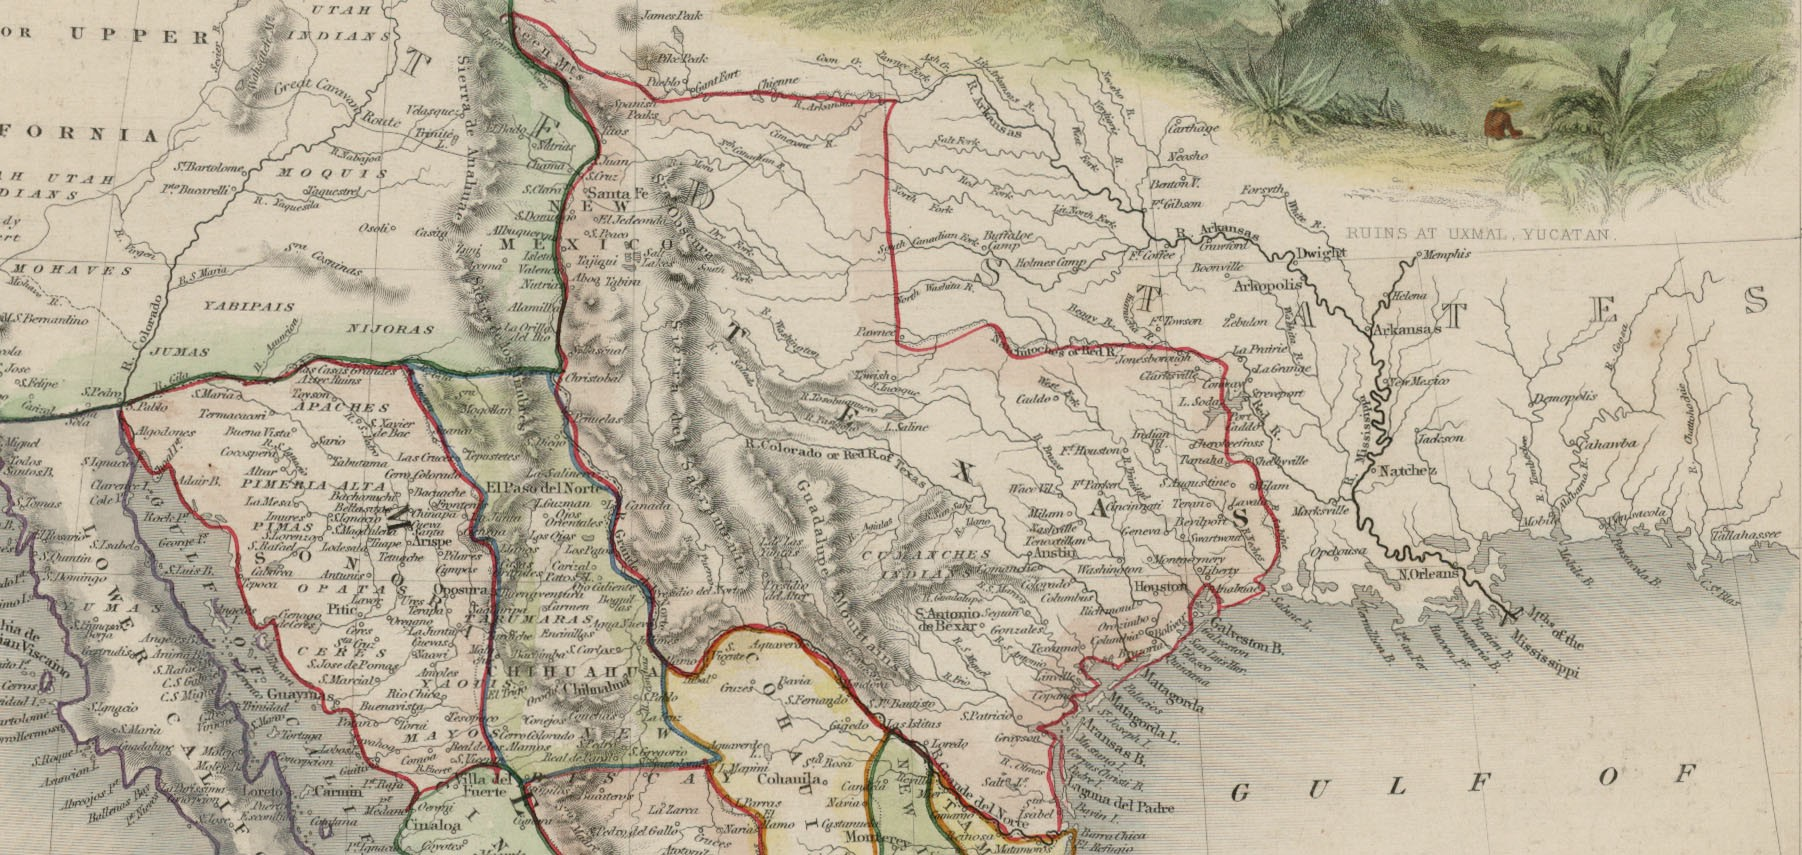 tallis map shows texas at its largest configuration stretching into wyoming and colorado john tallis j rapkin mexico california and texas london